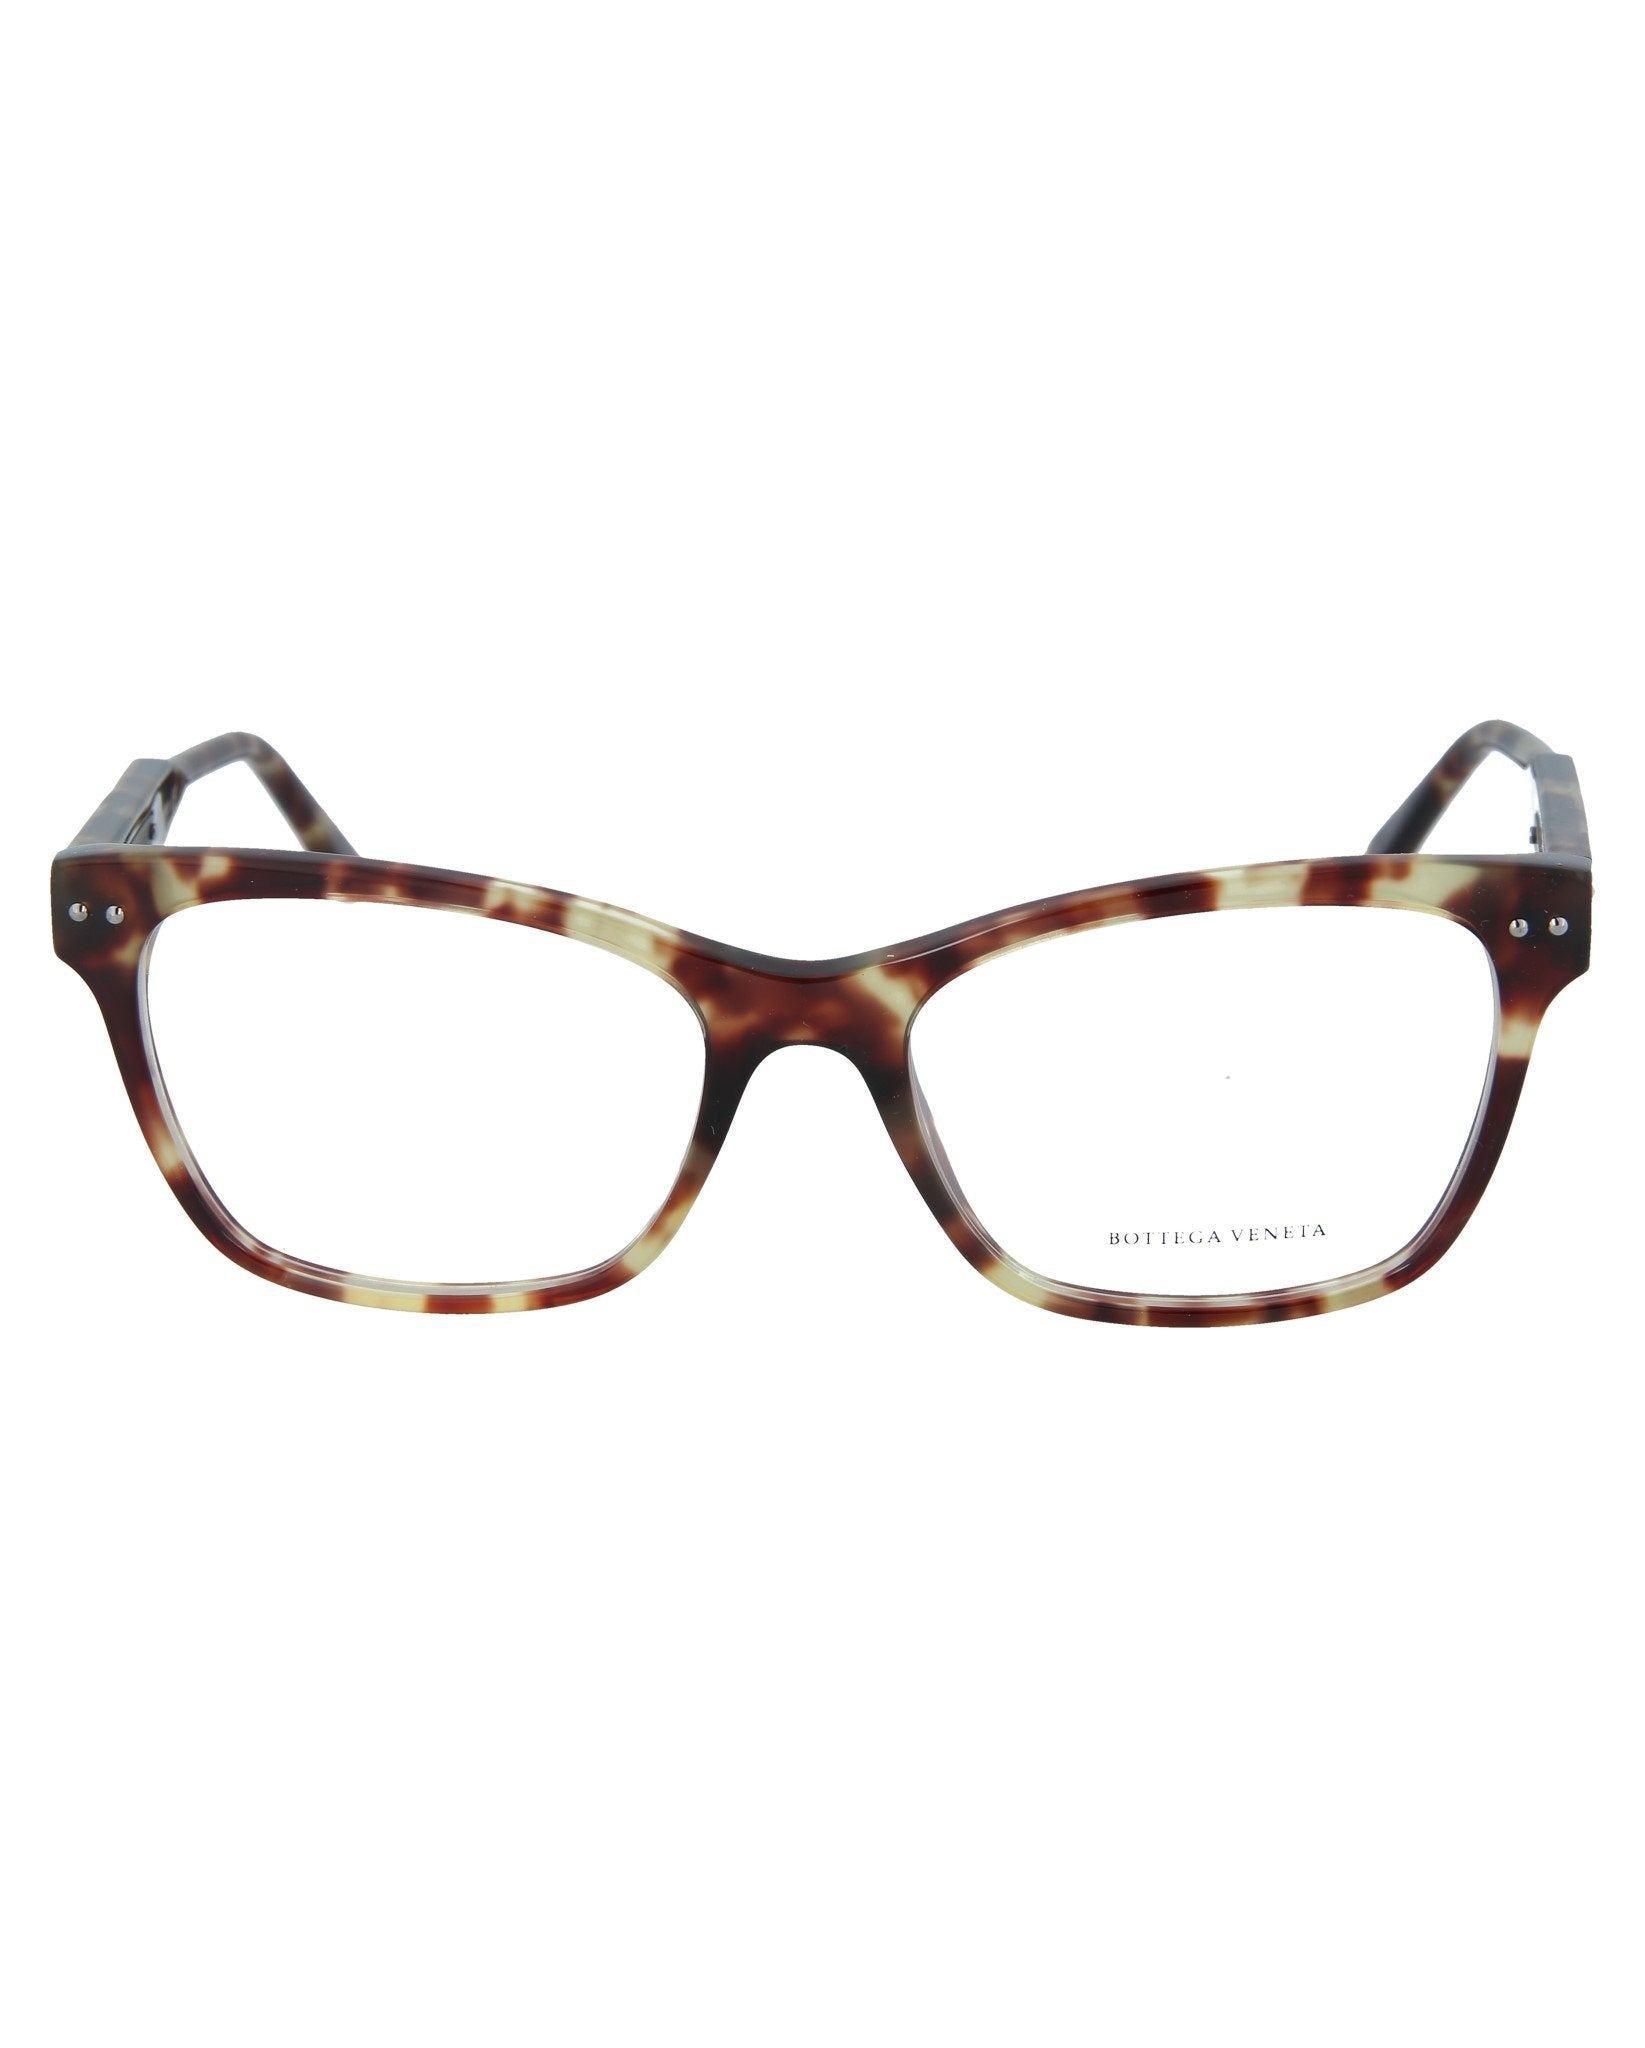 Bottega Veneta Cat Eye Optical Frames